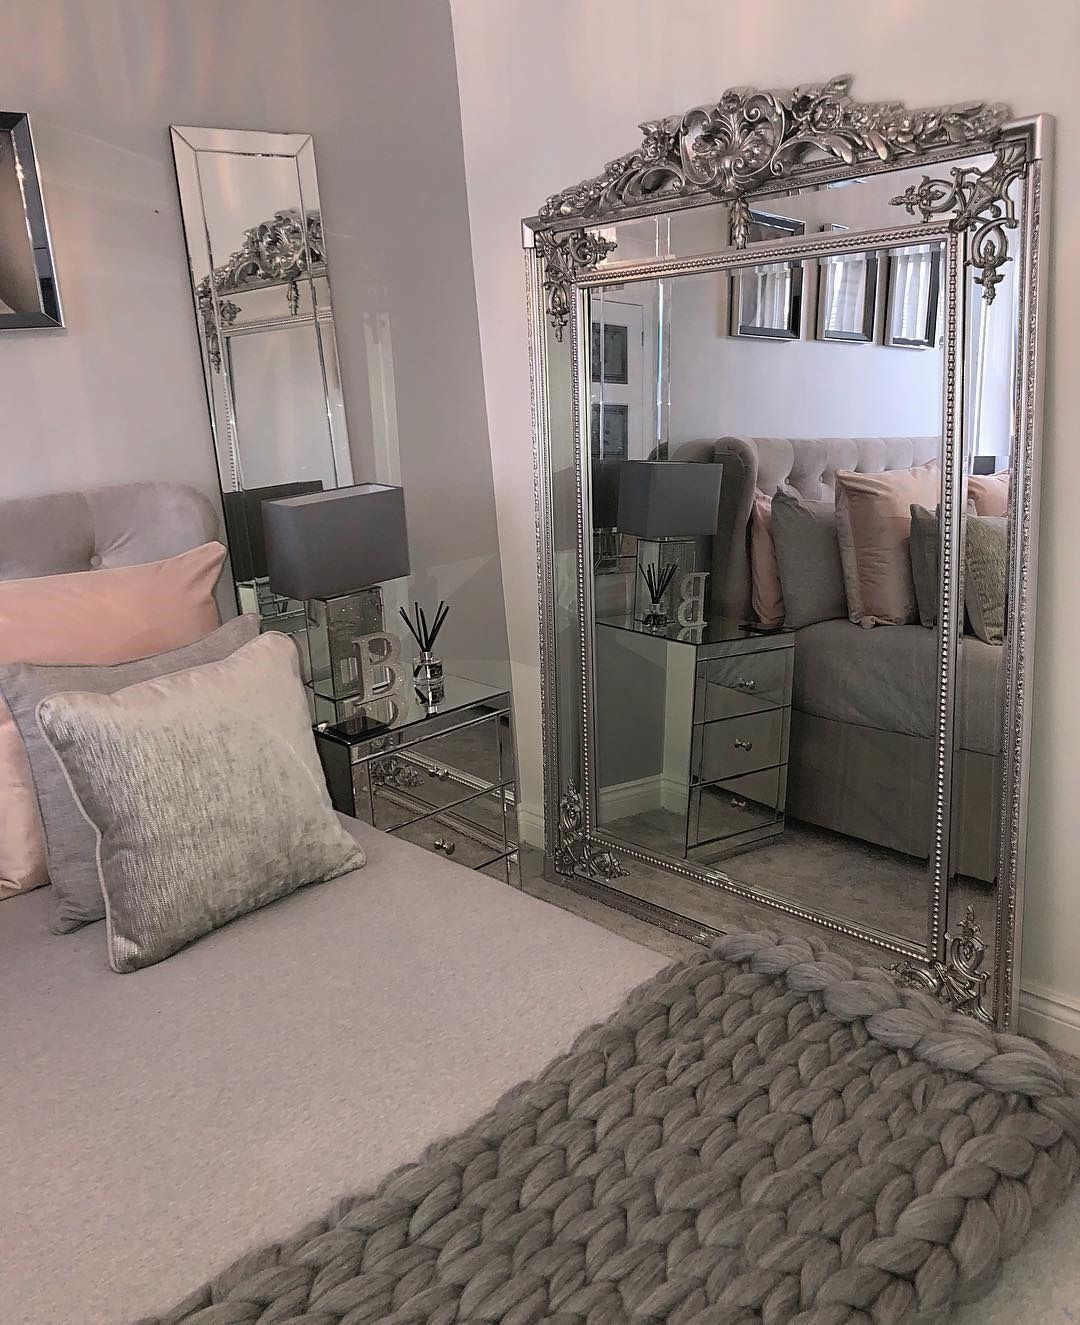 Pin By Lisa On Next Home Bedroom Decor